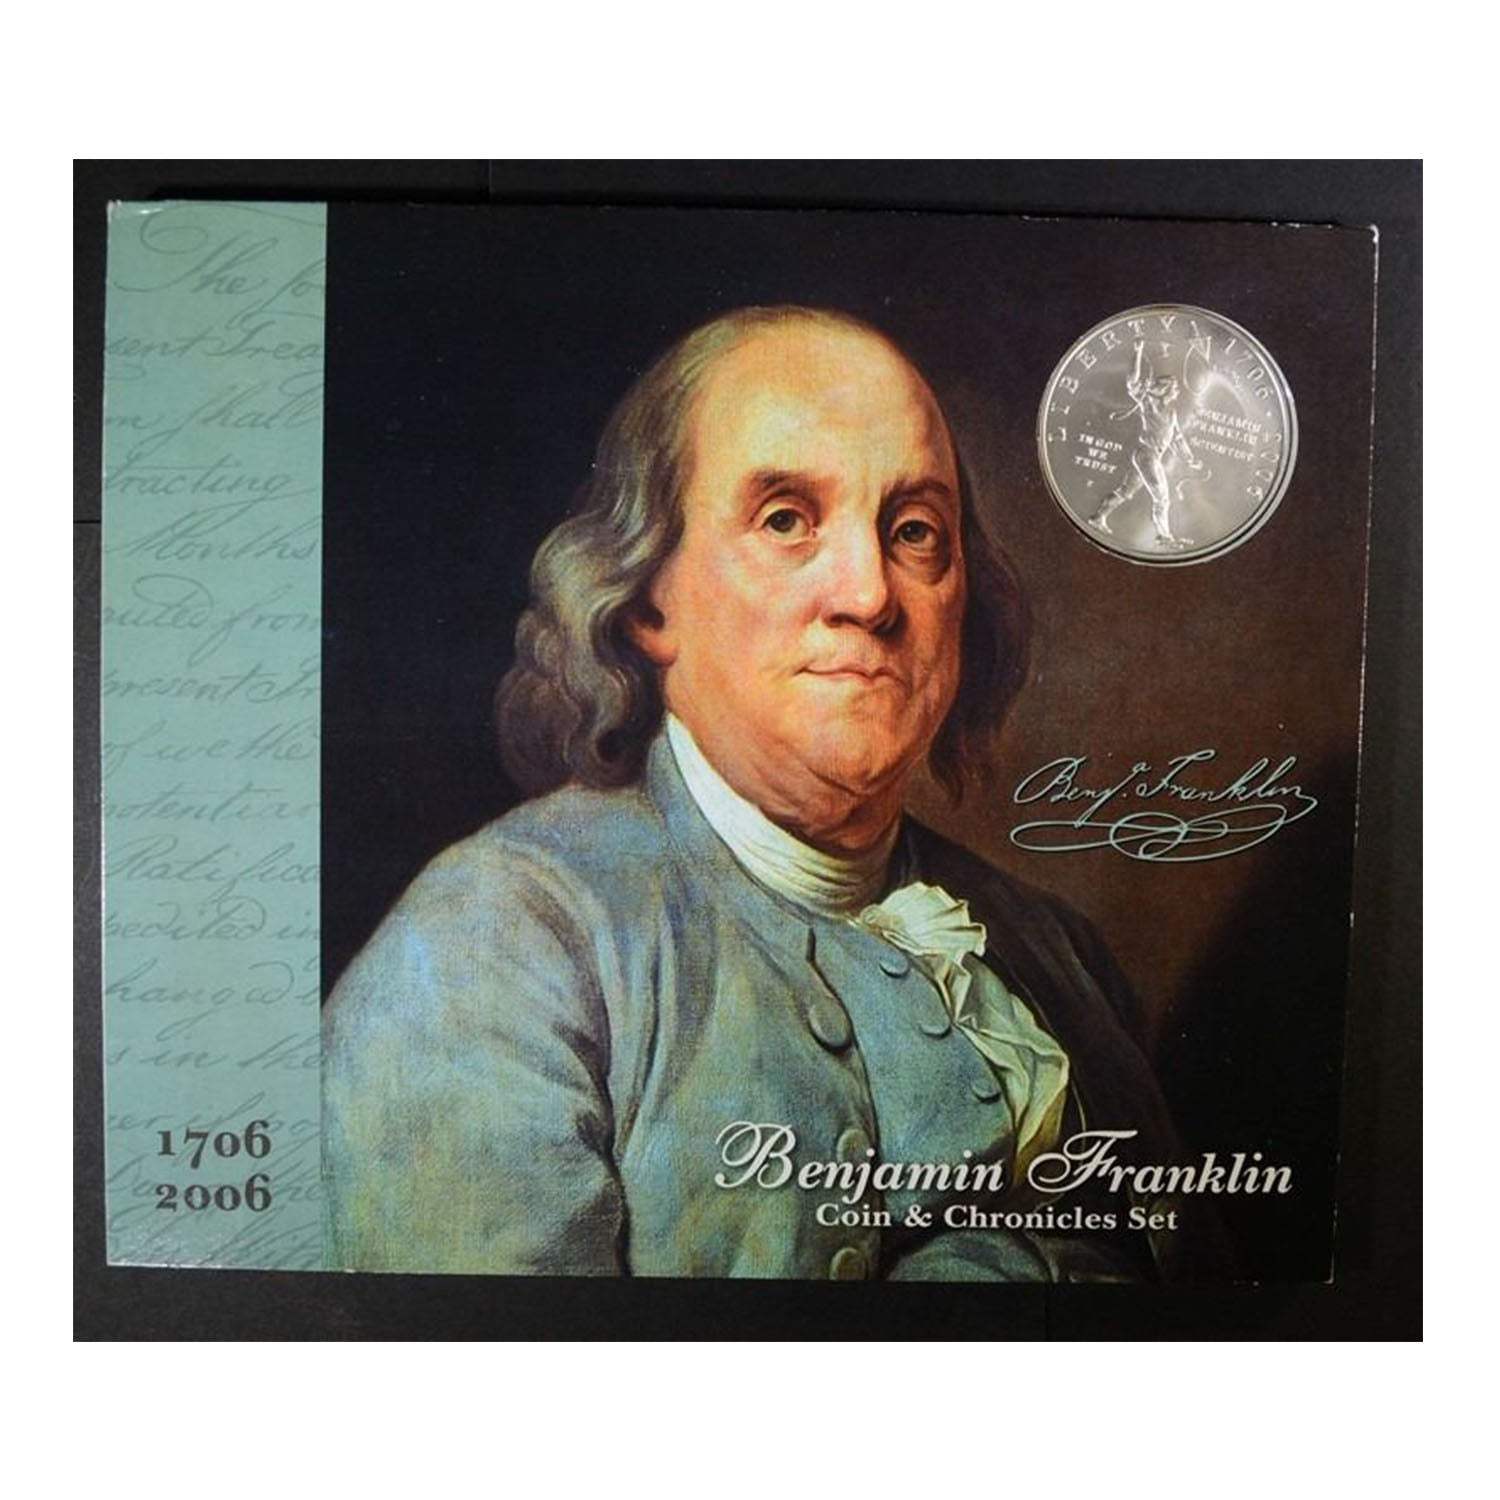 2006 Benjamin Franklin Coin and Chronicles Set